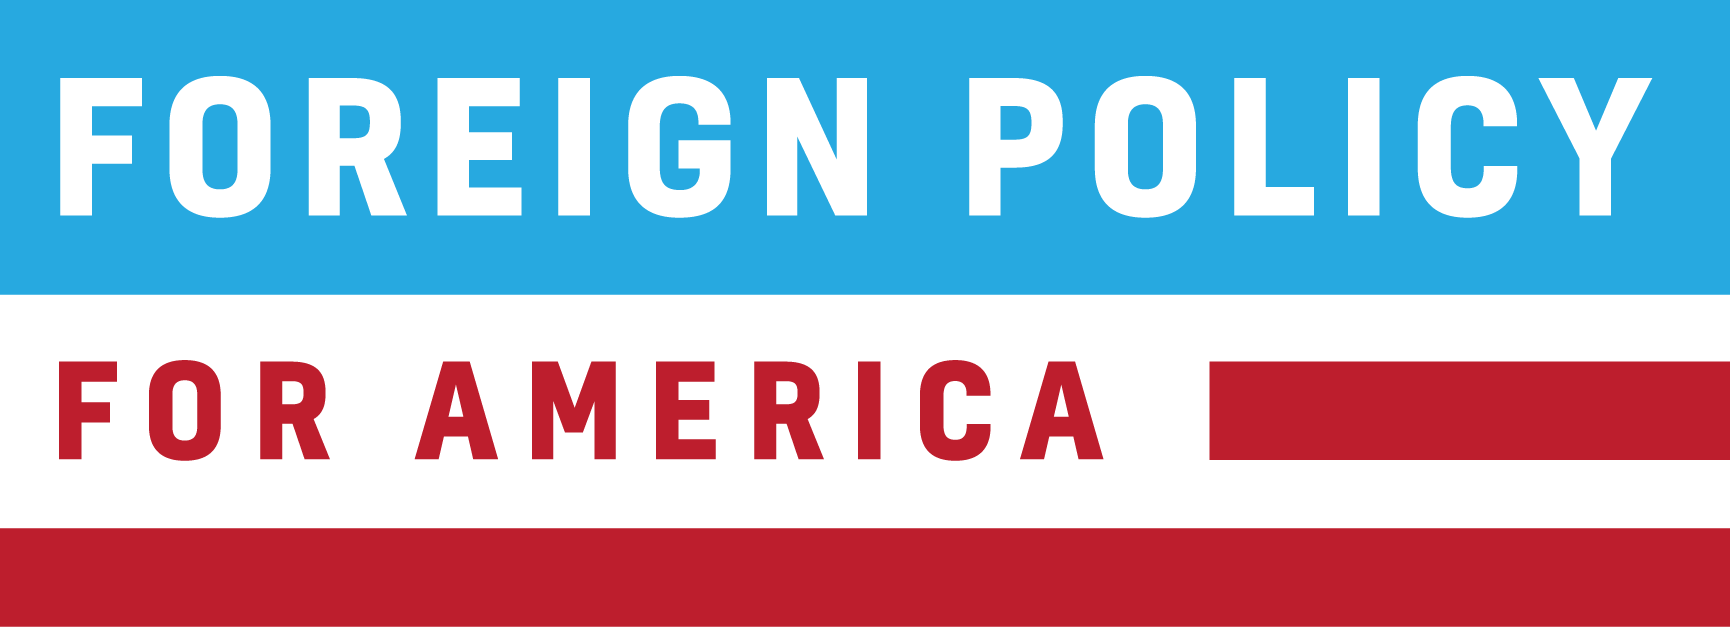 Foreign Policy for America - logo